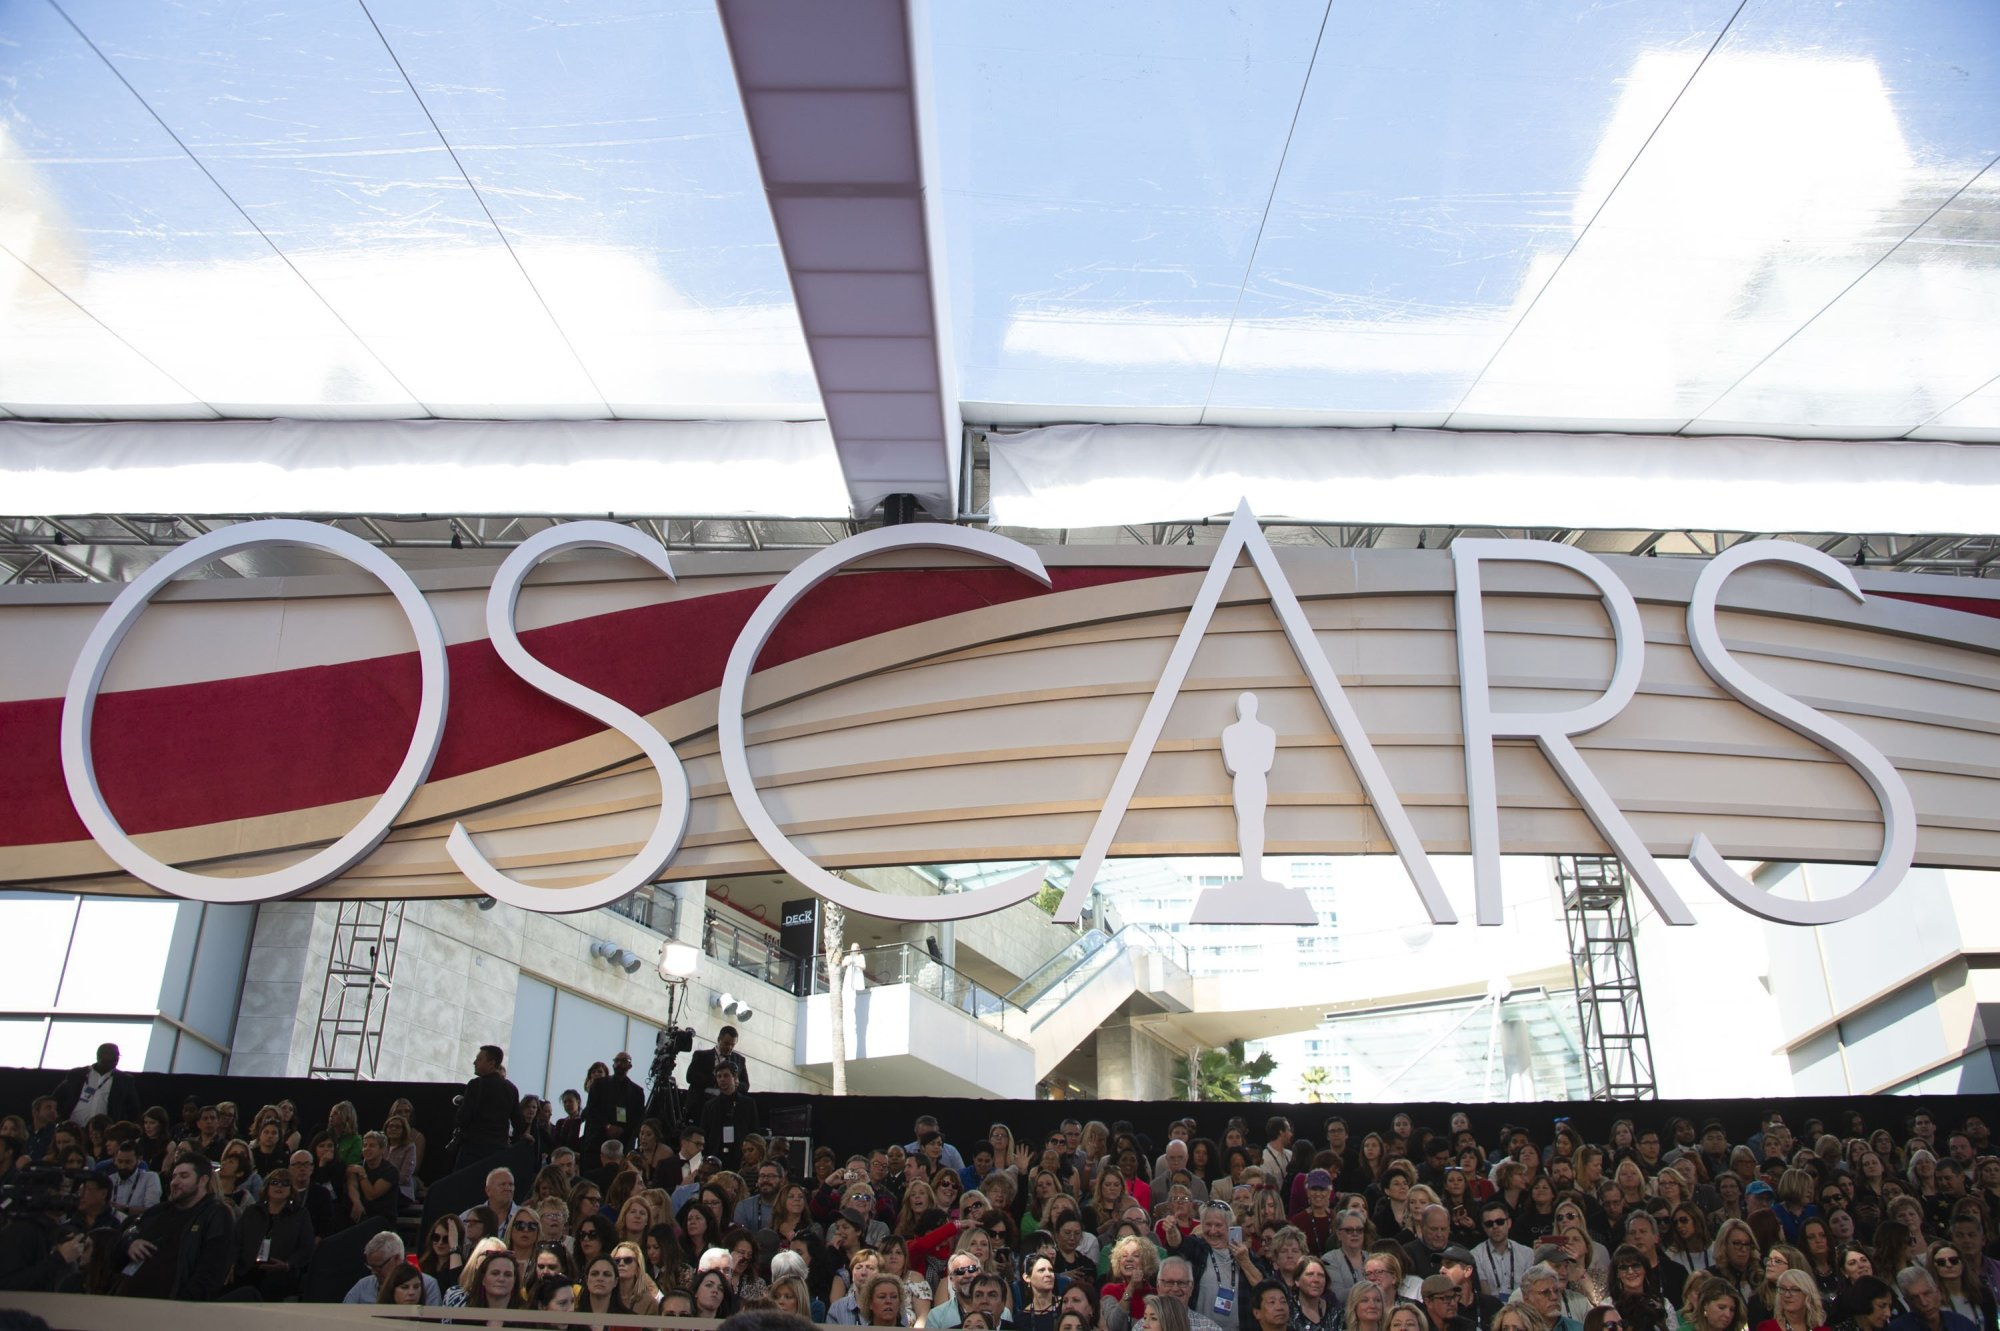 The 91st OscarsÆ broadcasts live on Sunday, Feb. 24, 2019, at the Dolby Theatre